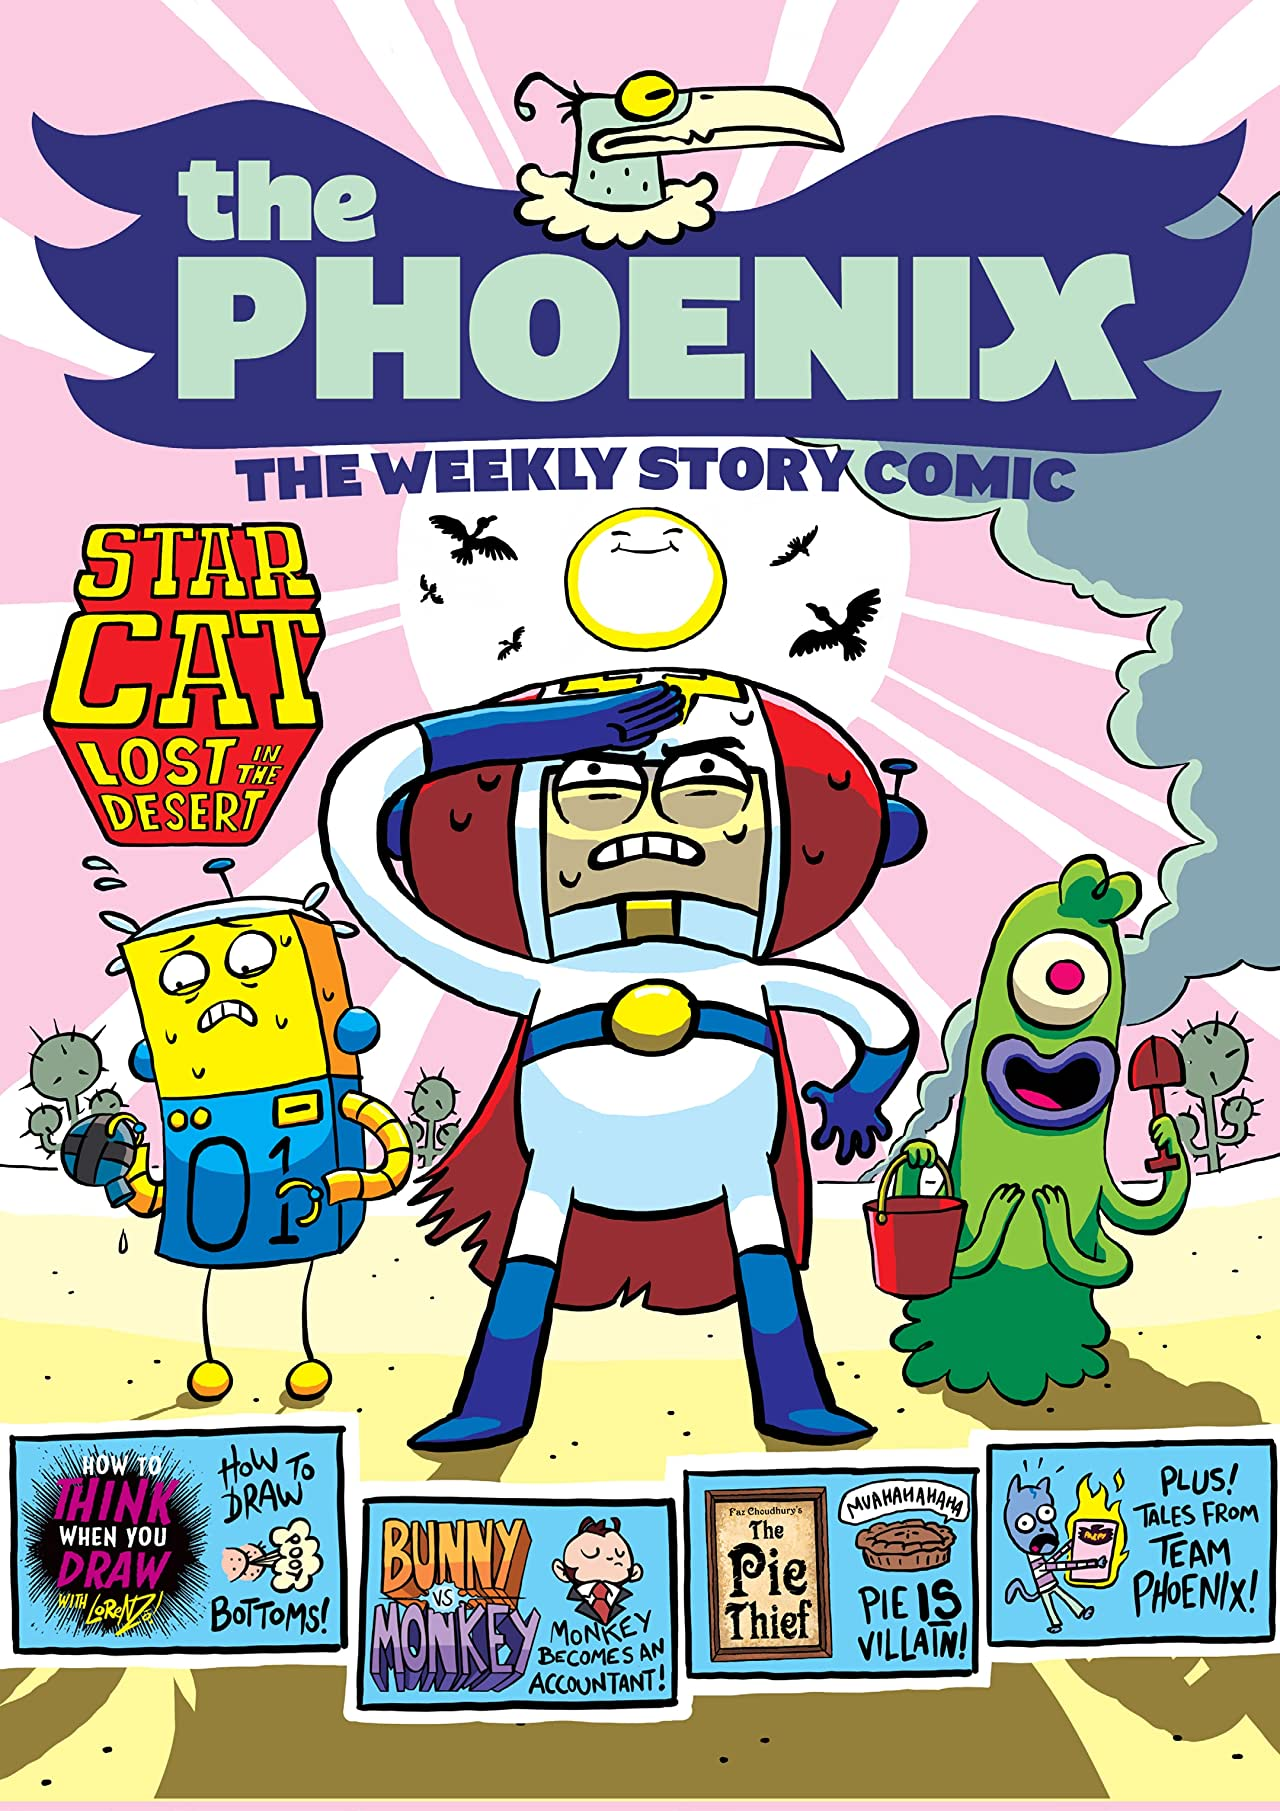 The Phoenix #282: The Weekly Story Comic